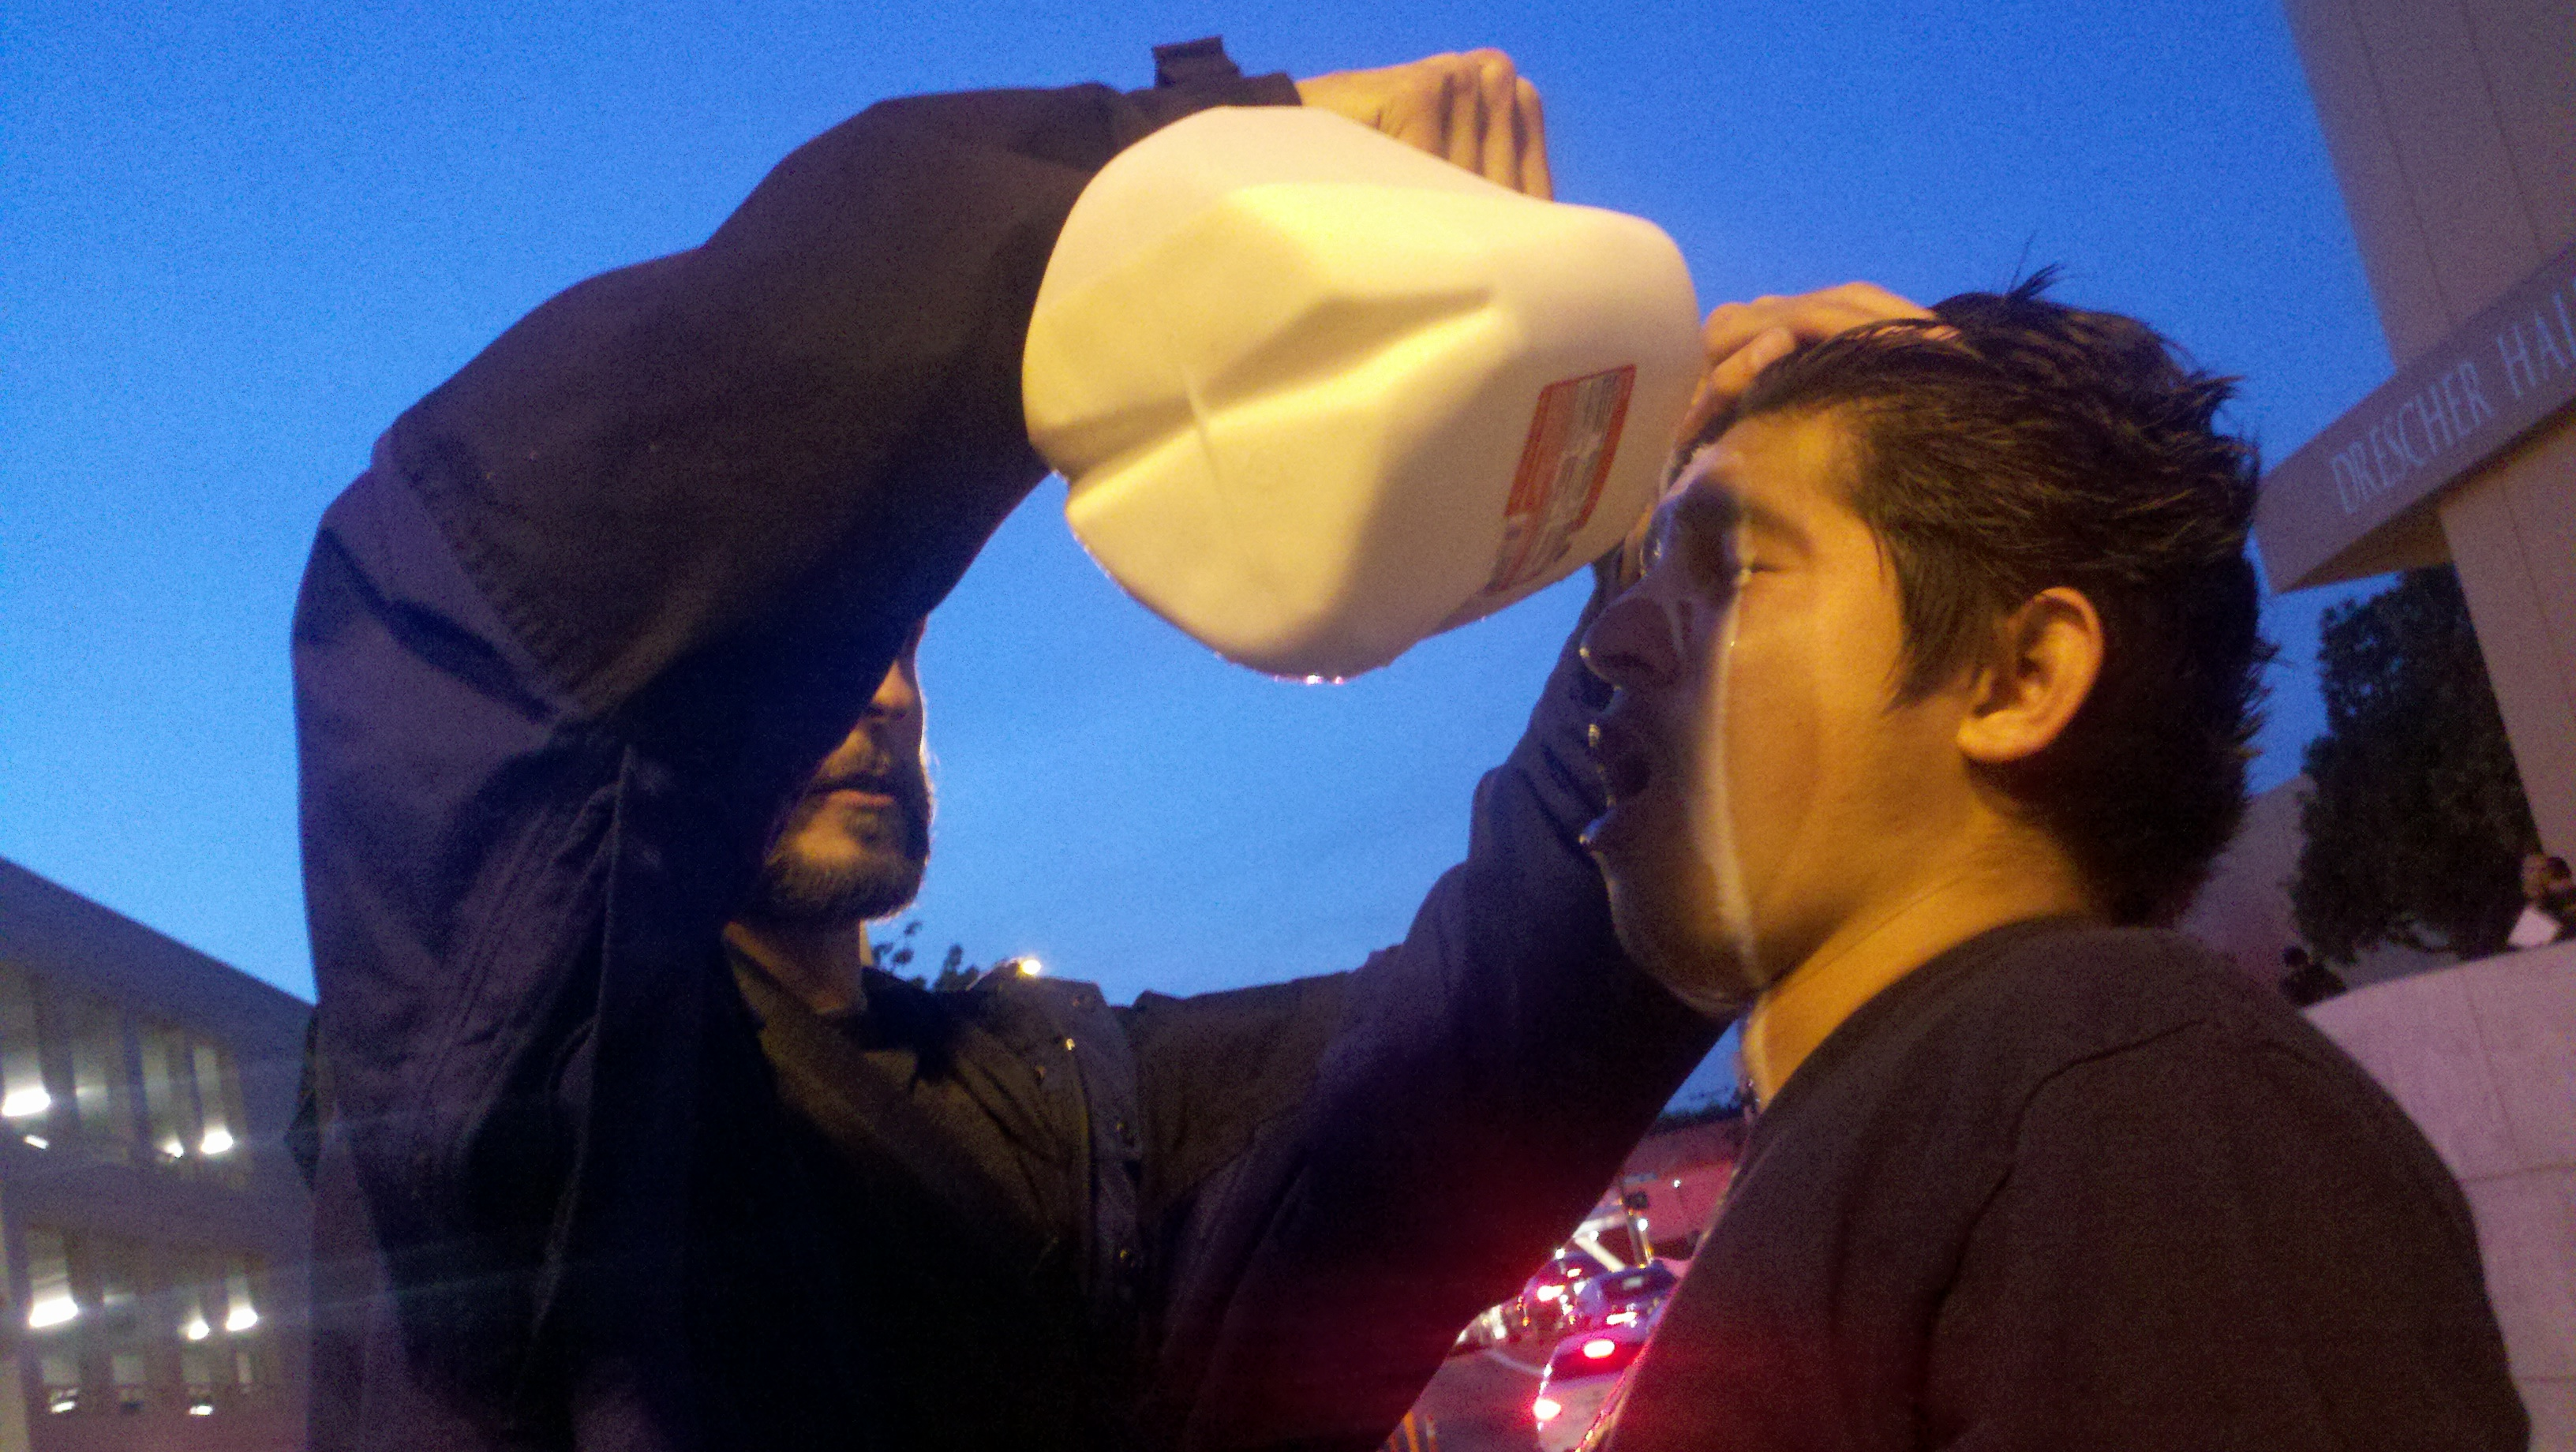 April 3, 2012. A student pours milk in the eyes of a co-protester who was sprayed by pepper spray.